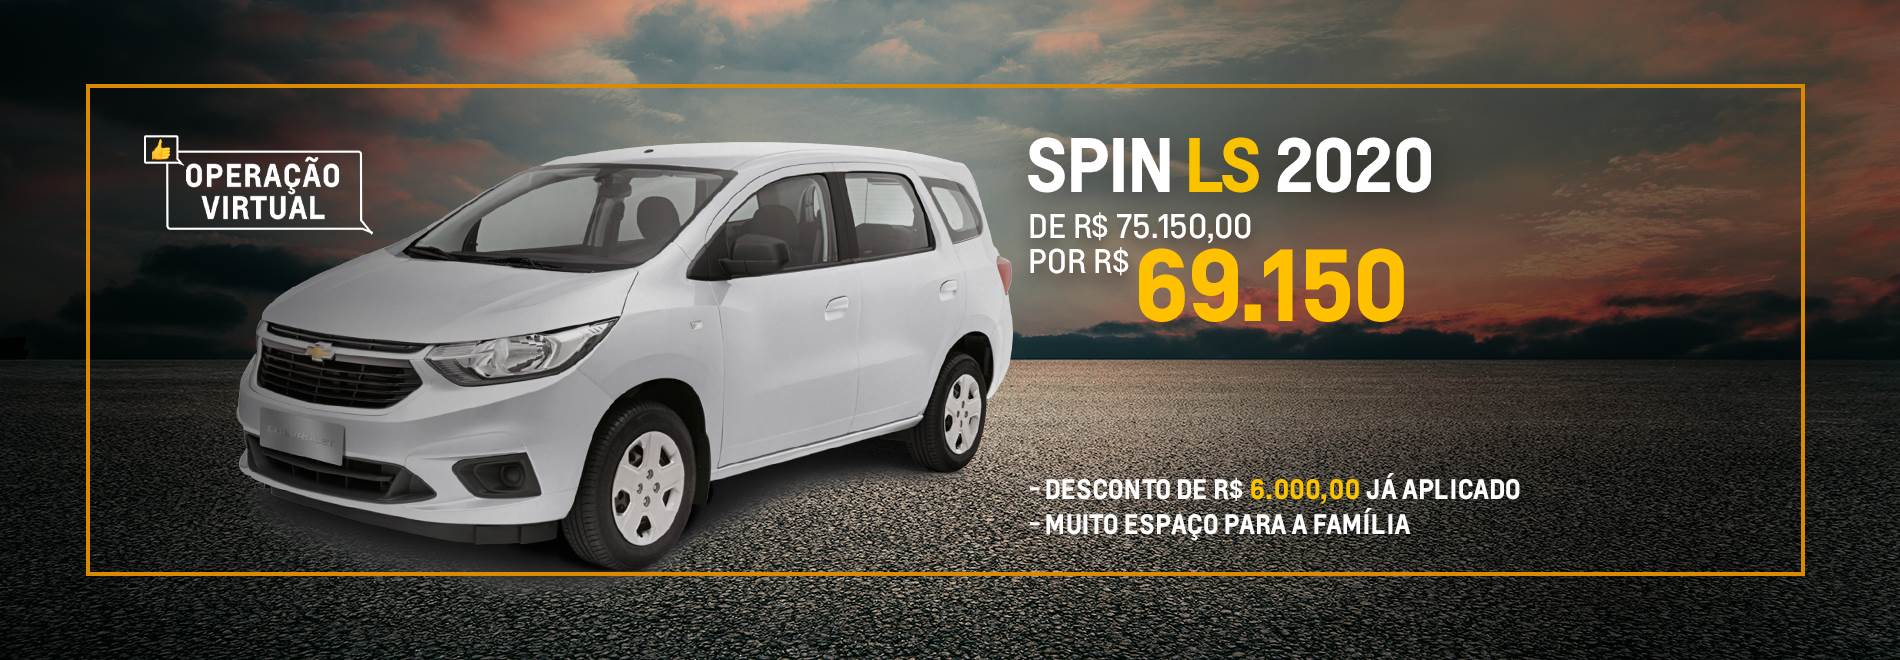 65_Nacional_SPIN-LS-2020_OFFER_Liguligth